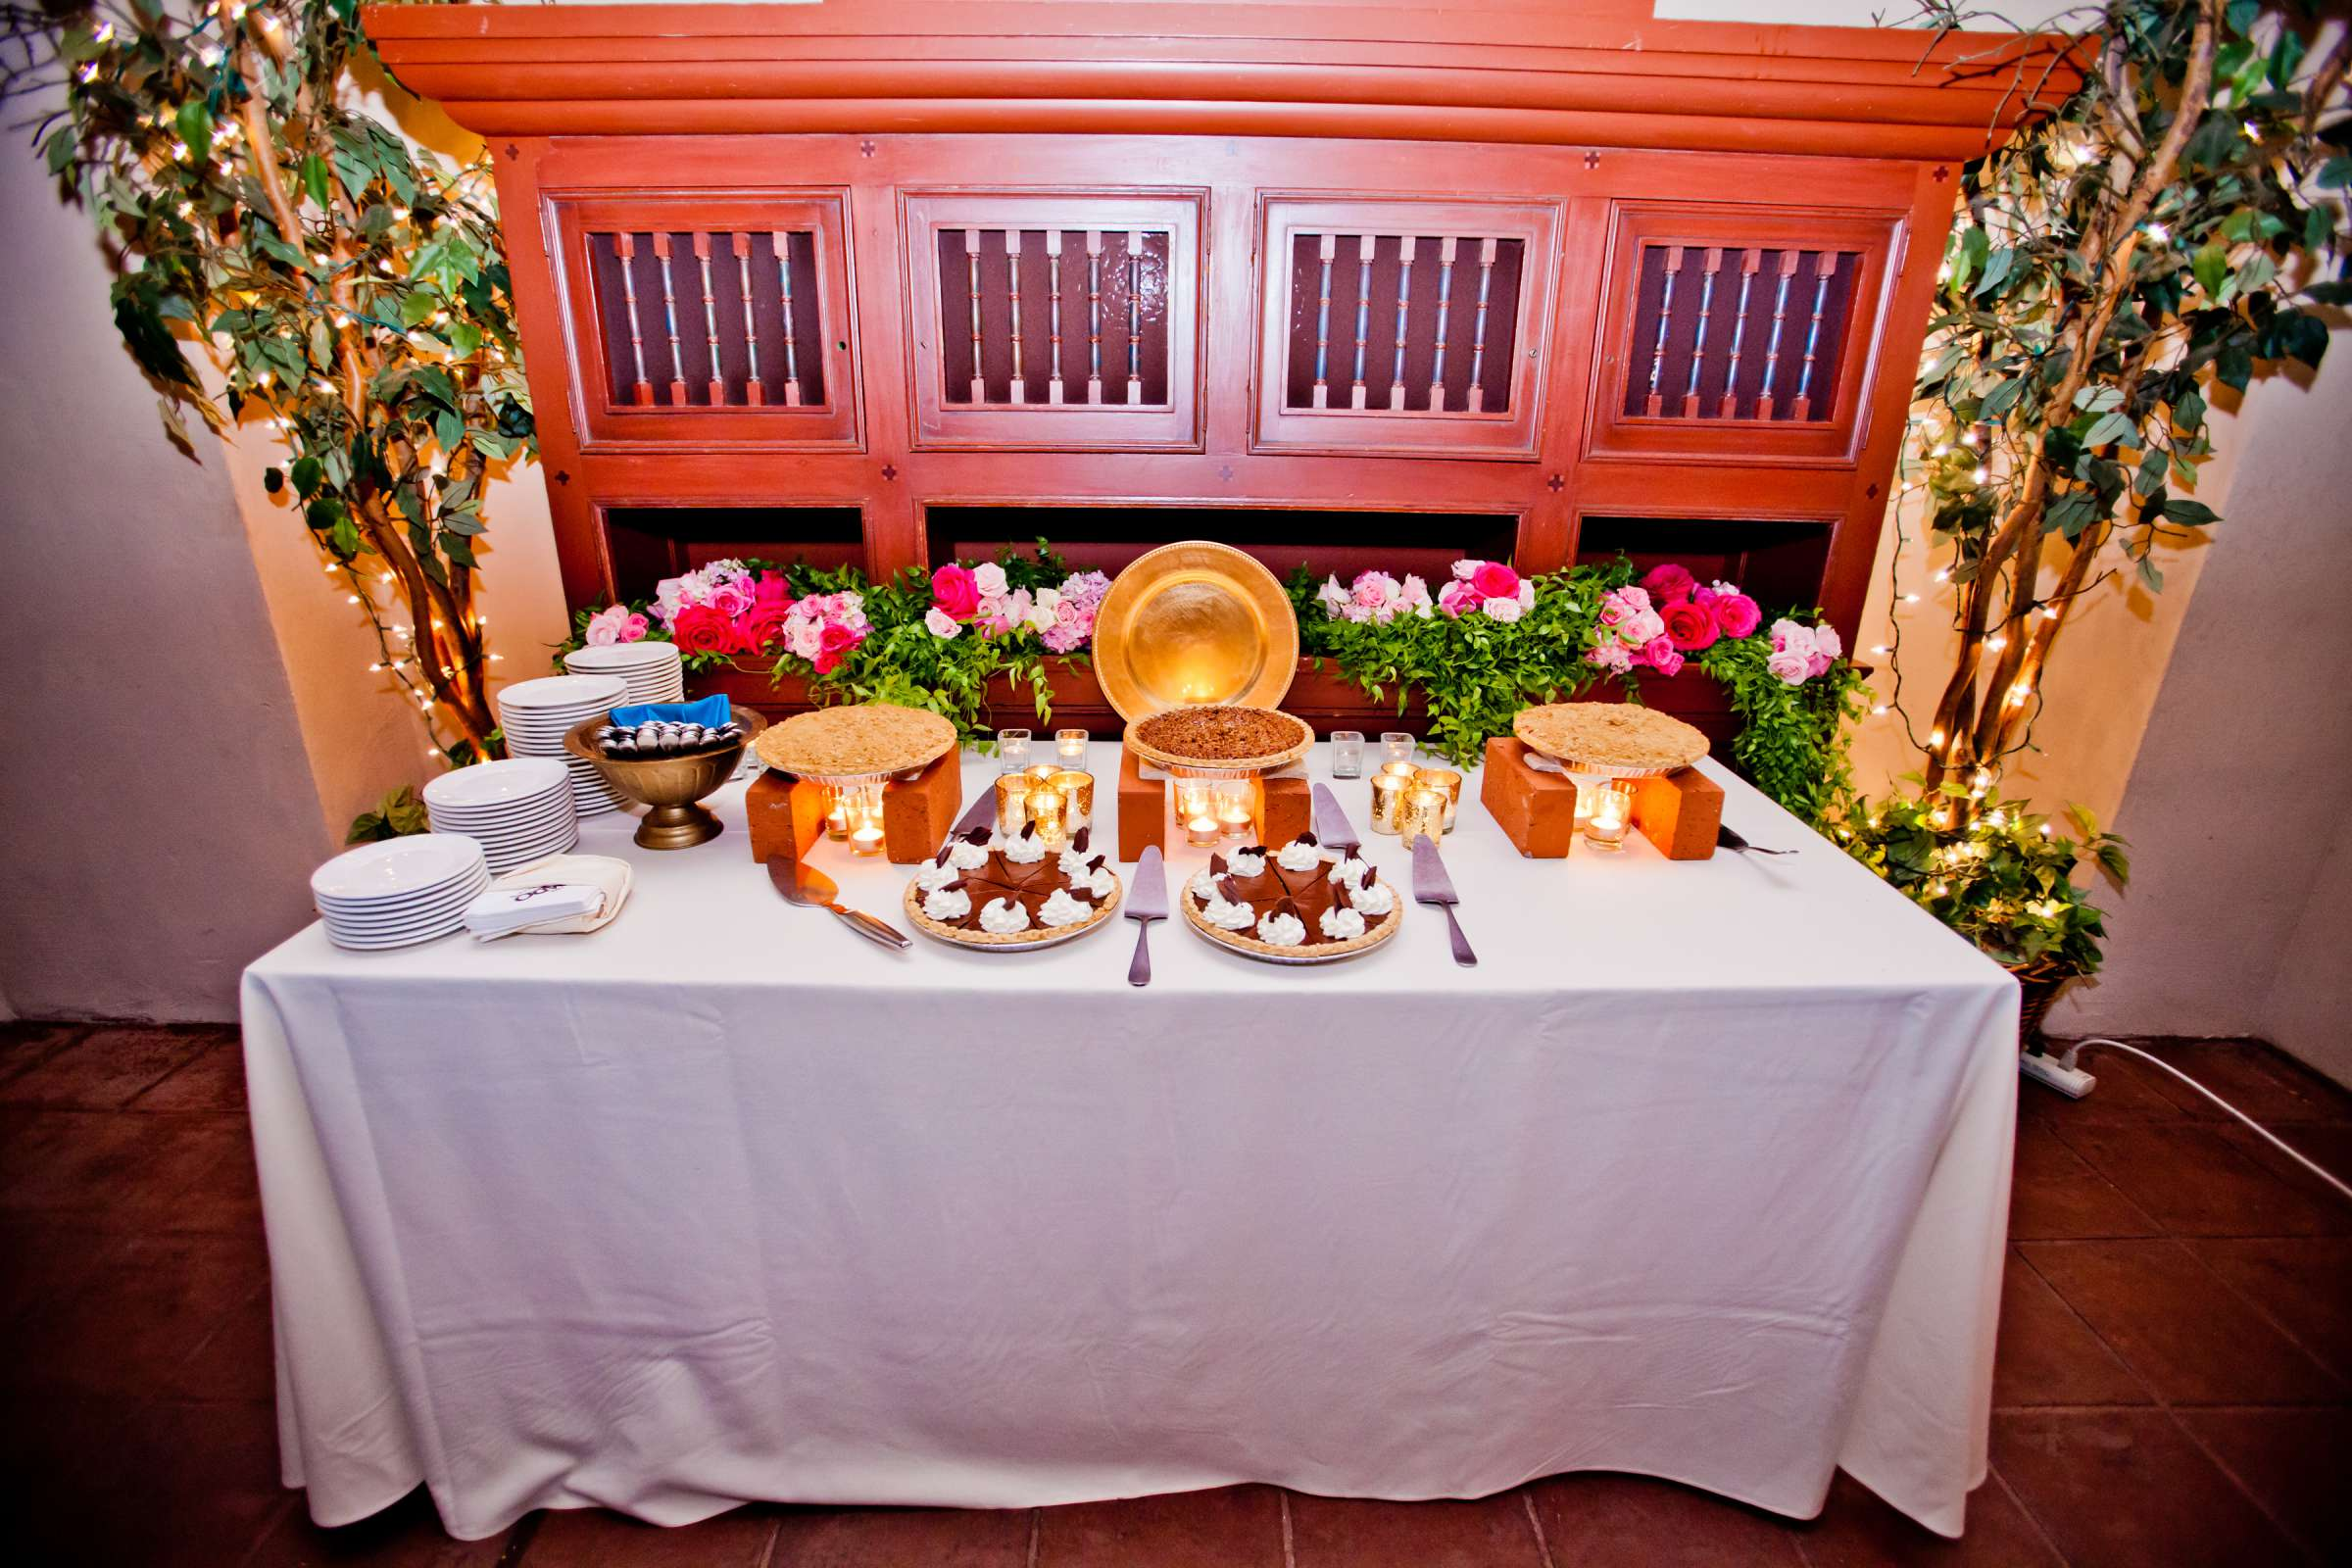 Dessert Table at The Prado Wedding coordinated by First Comes Love Weddings & Events, Erin and Peter Wedding Photo #76 by True Photography